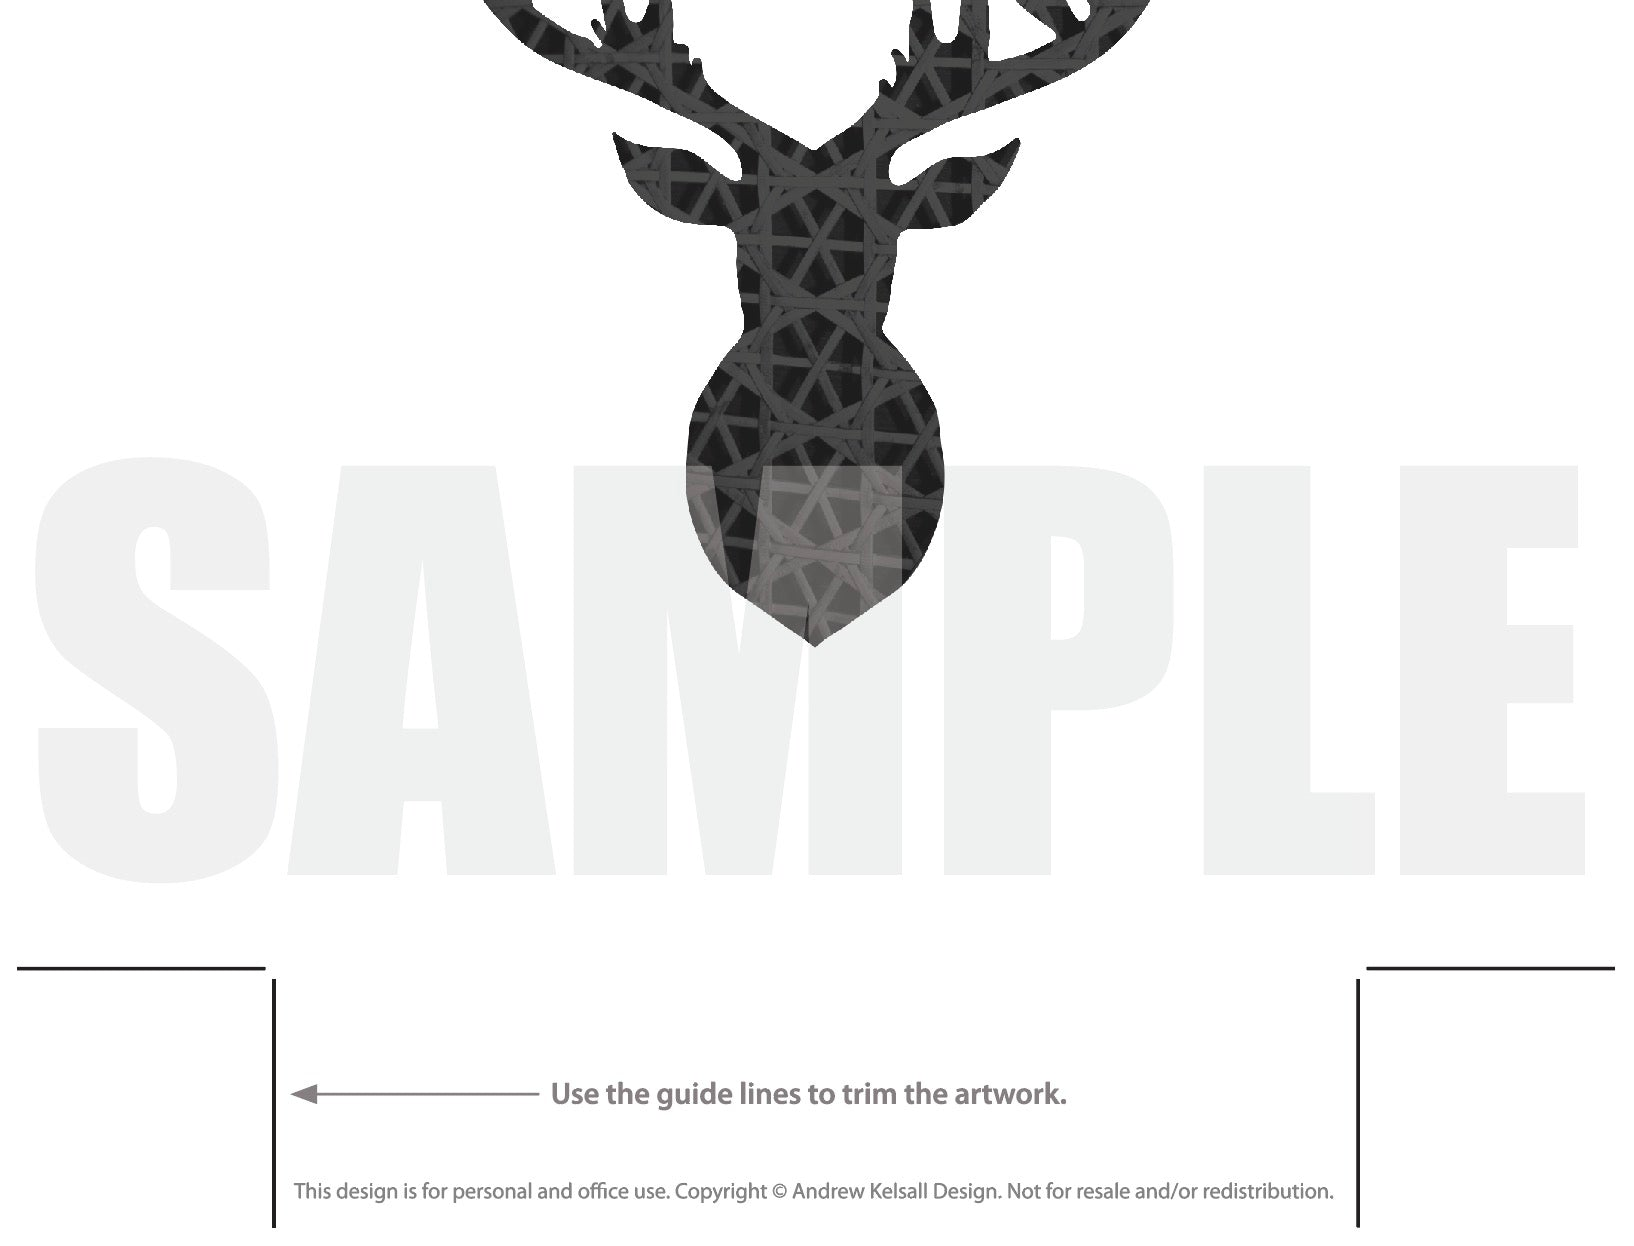 picture regarding Deer Silhouette Printable referred to as Deer Intellect Silhouette, Stags Intellect Lattice Routine Printable